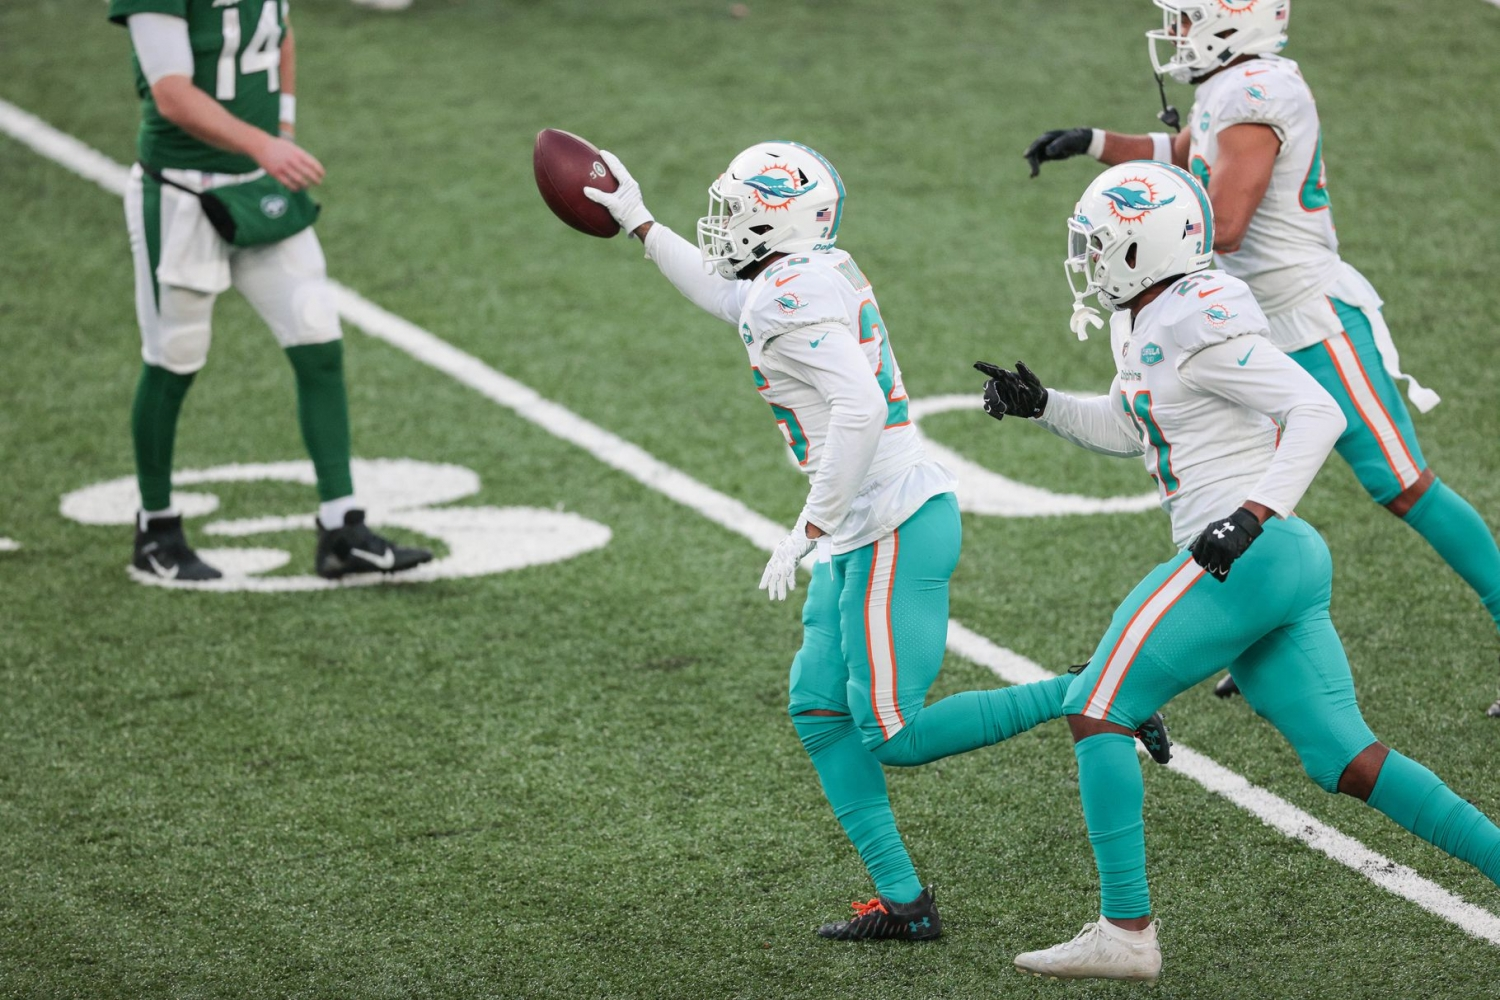 Dolphins win Jets